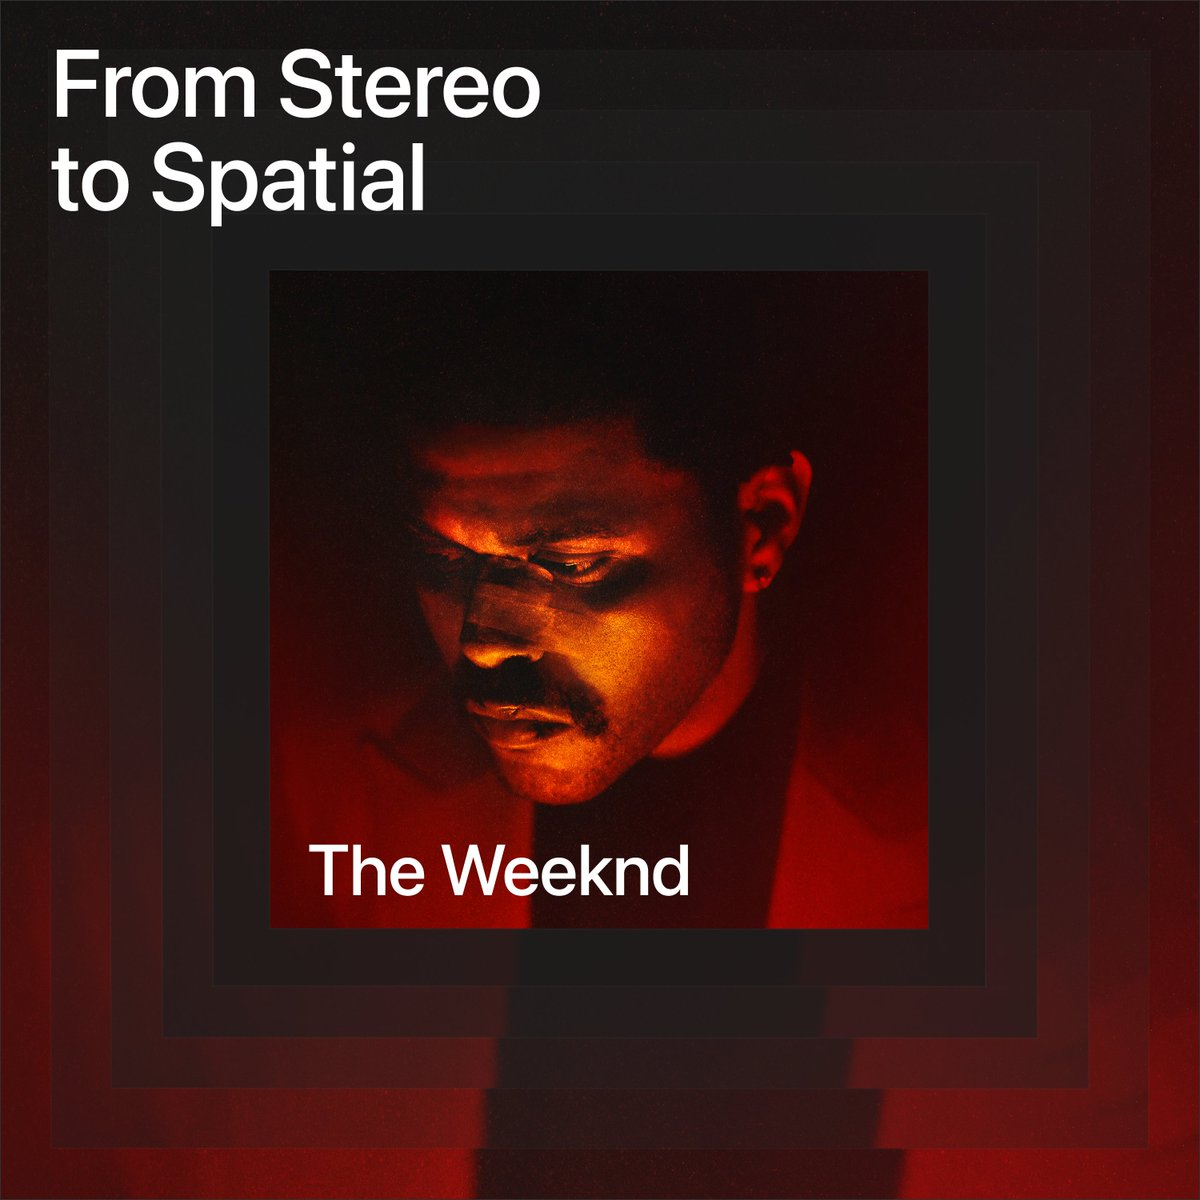 Listen to #SaveYourTears by @theweeknd, from stereo to #SpatialAudio with #DolbyAtmos.  Hear the difference with a special guide to Spatial Audio, hosted by @zanelowe. https://t.co/k8OSH0MJNs https://t.co/0T3xk2gfTA